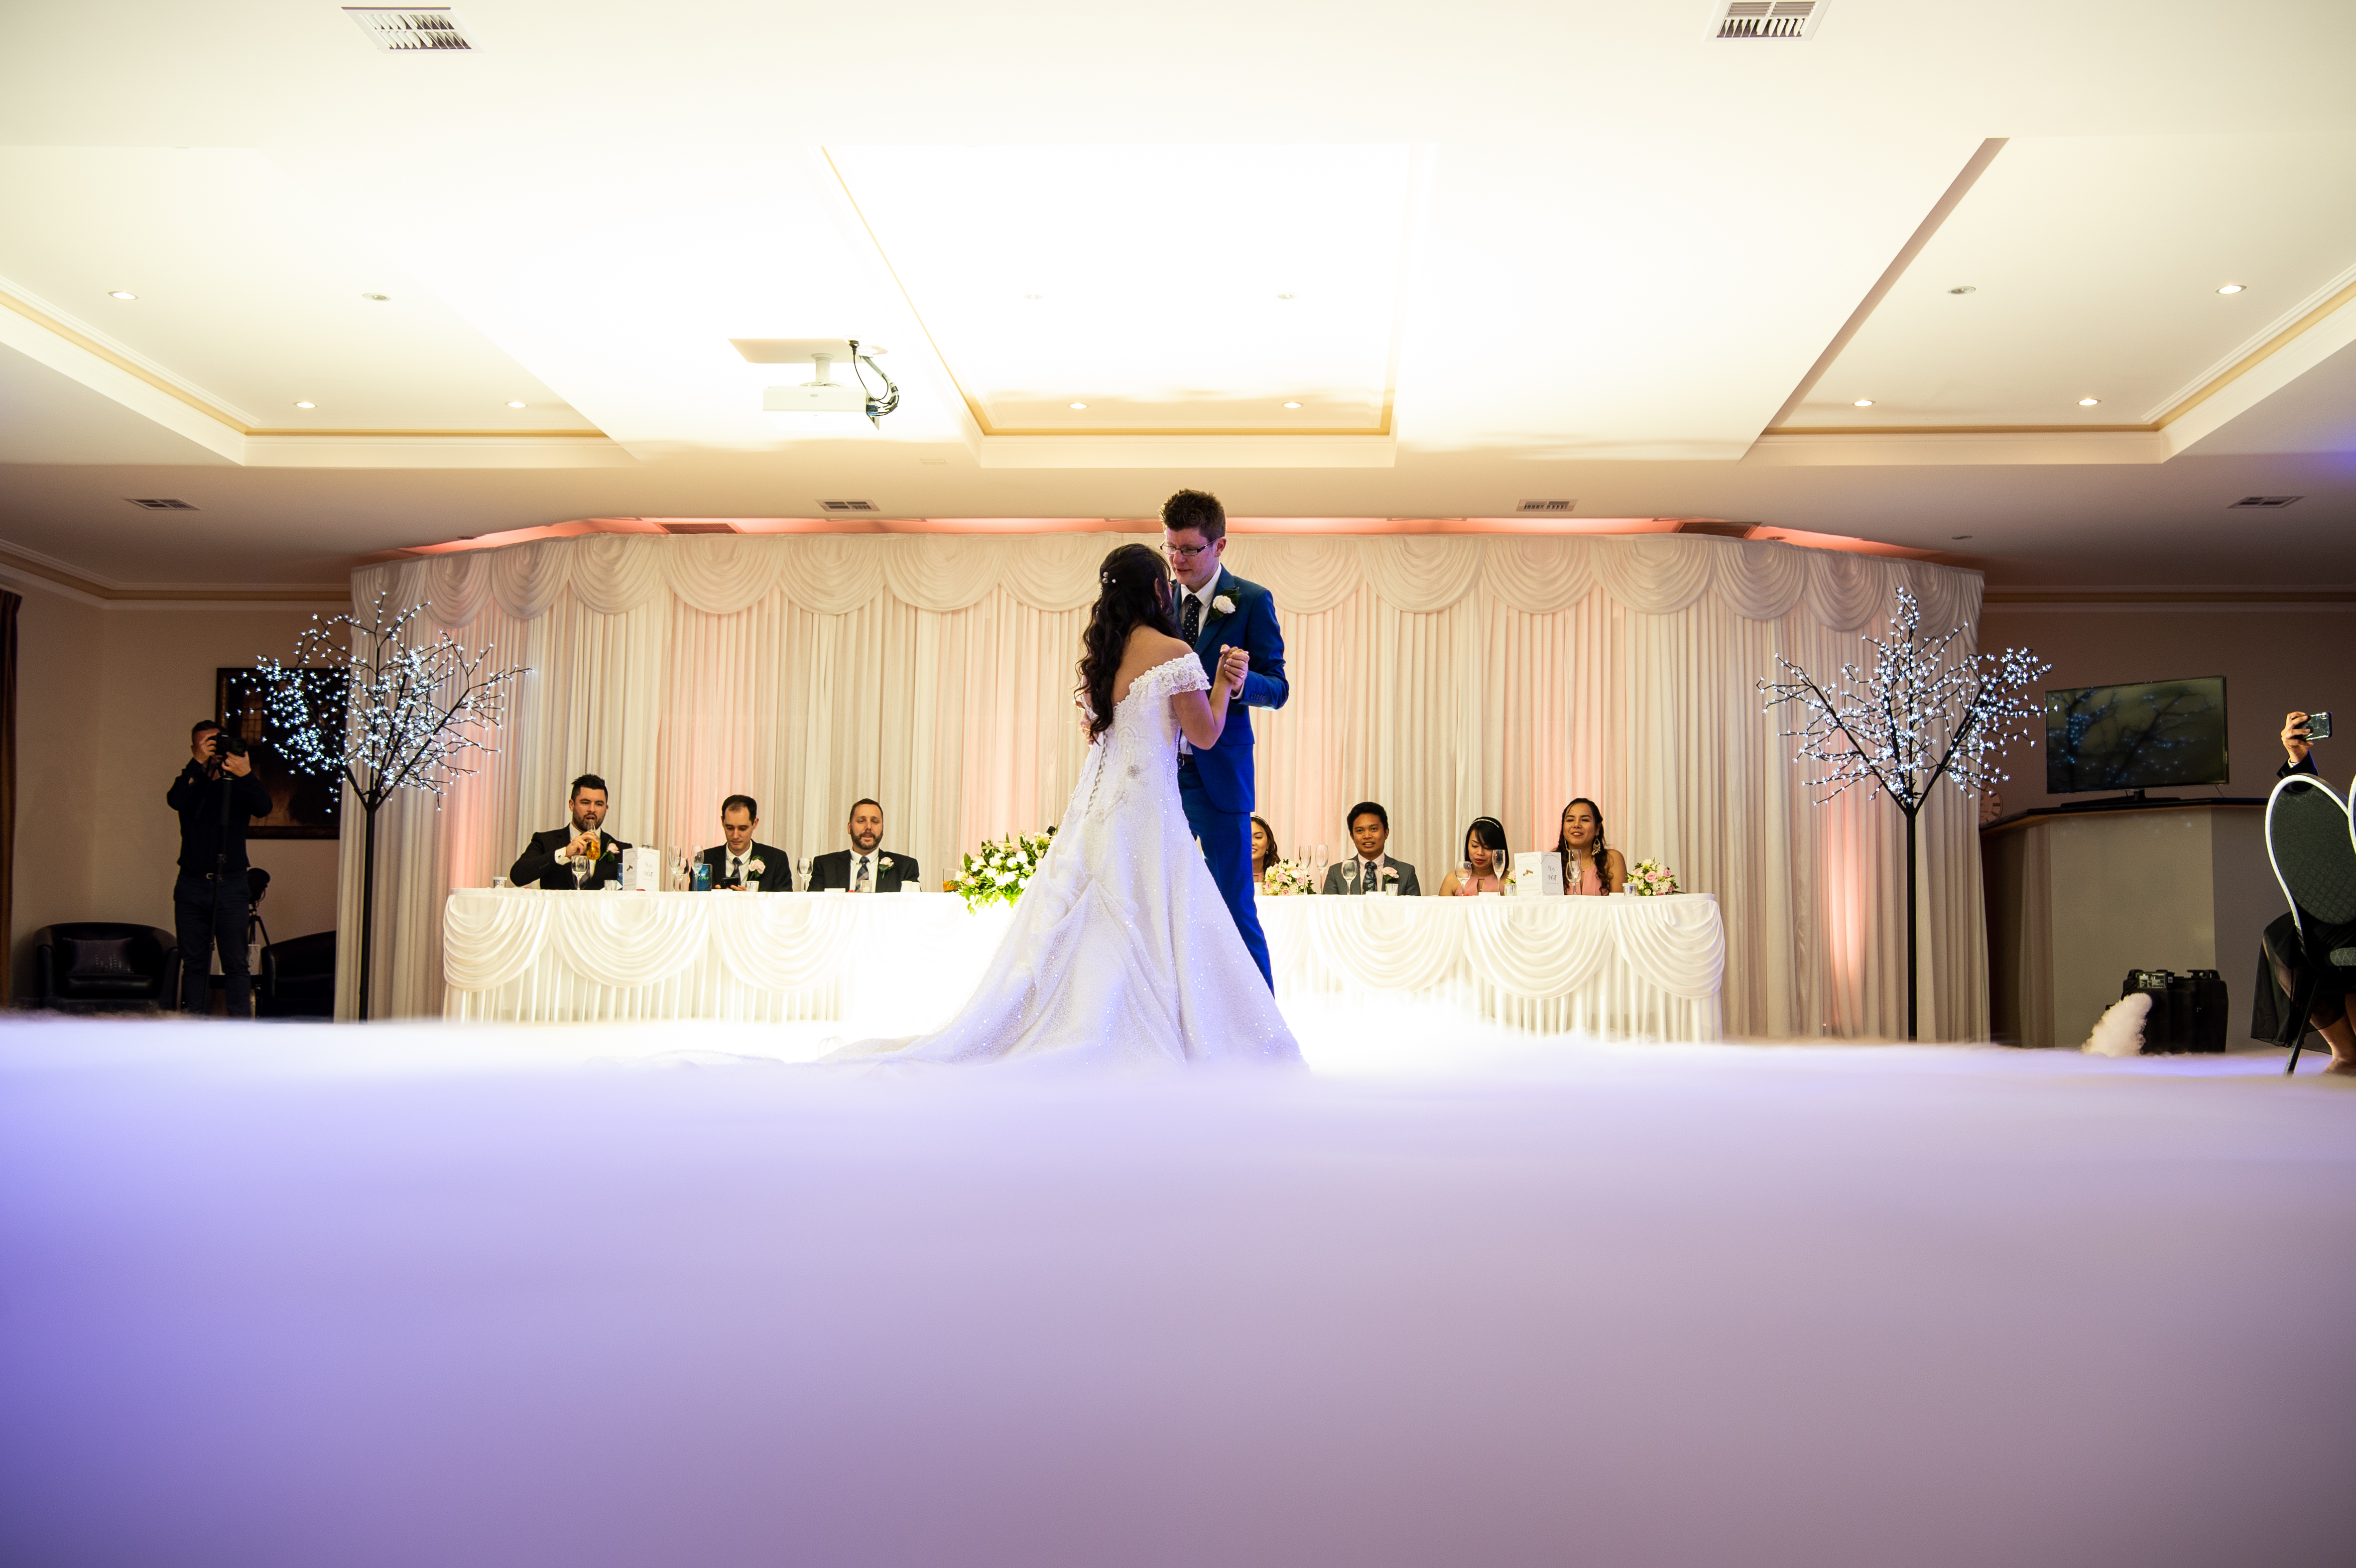 Wedding Services Melbourne